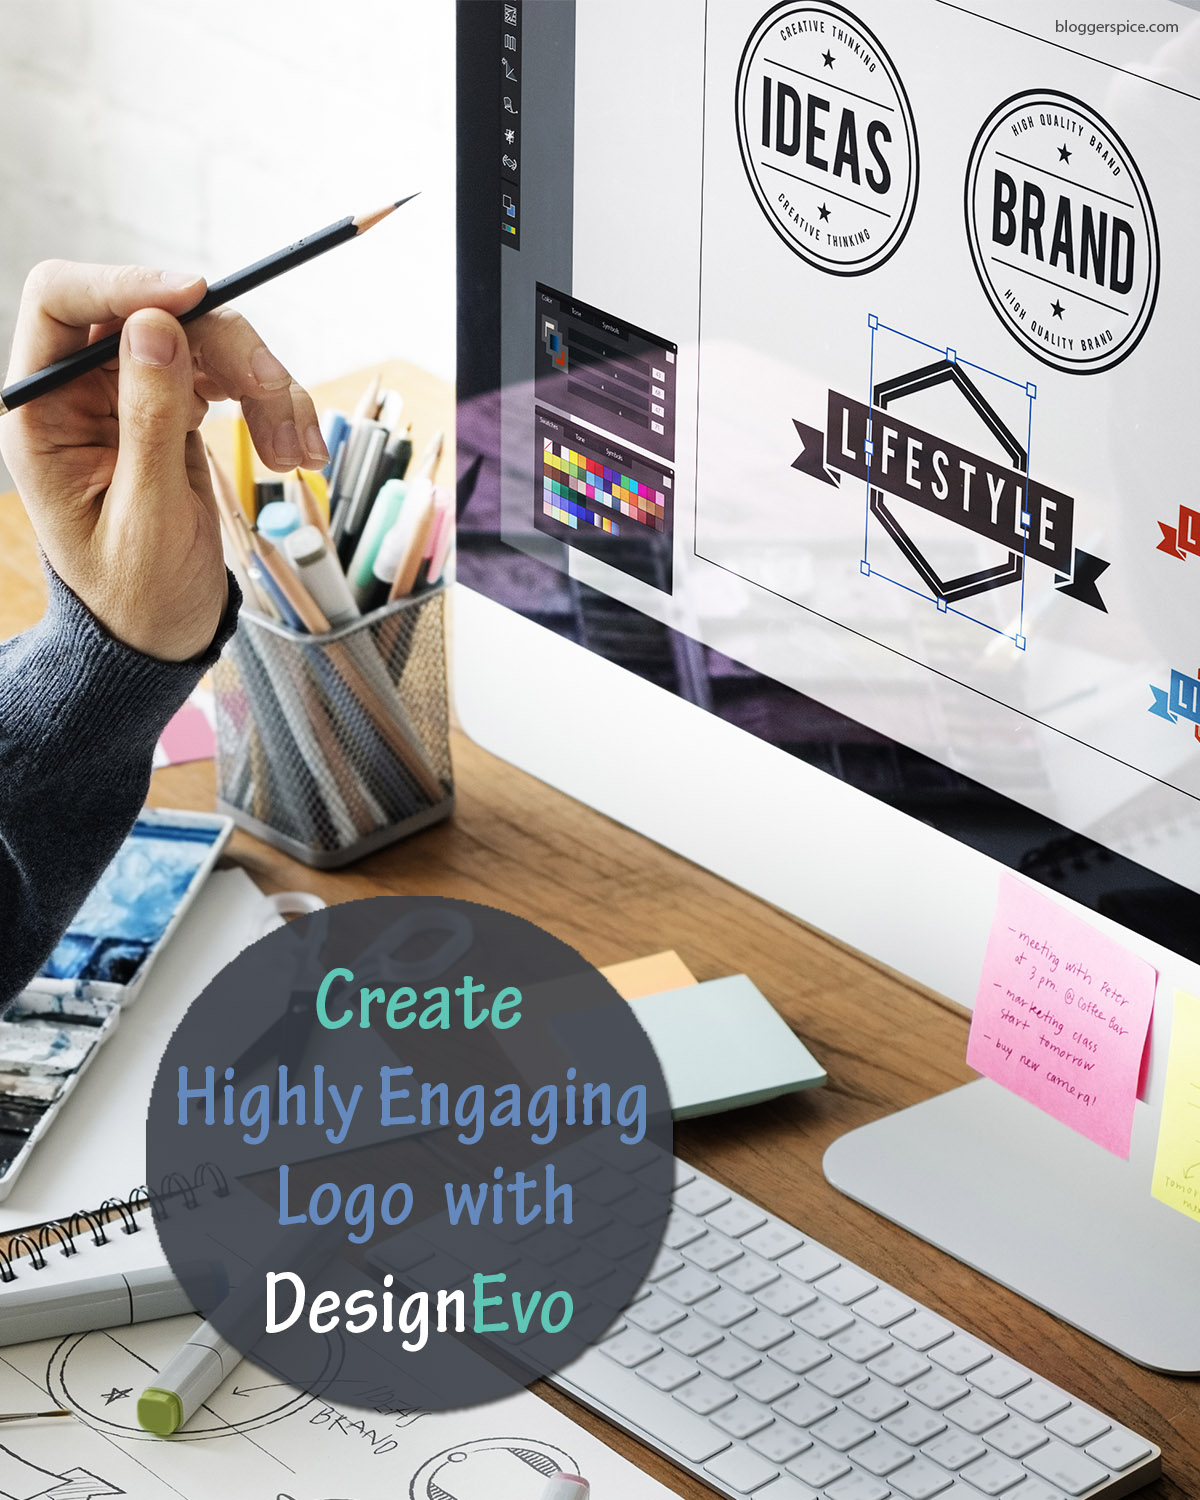 Create Your Own Logo For Free Using Designevo For Your Blog